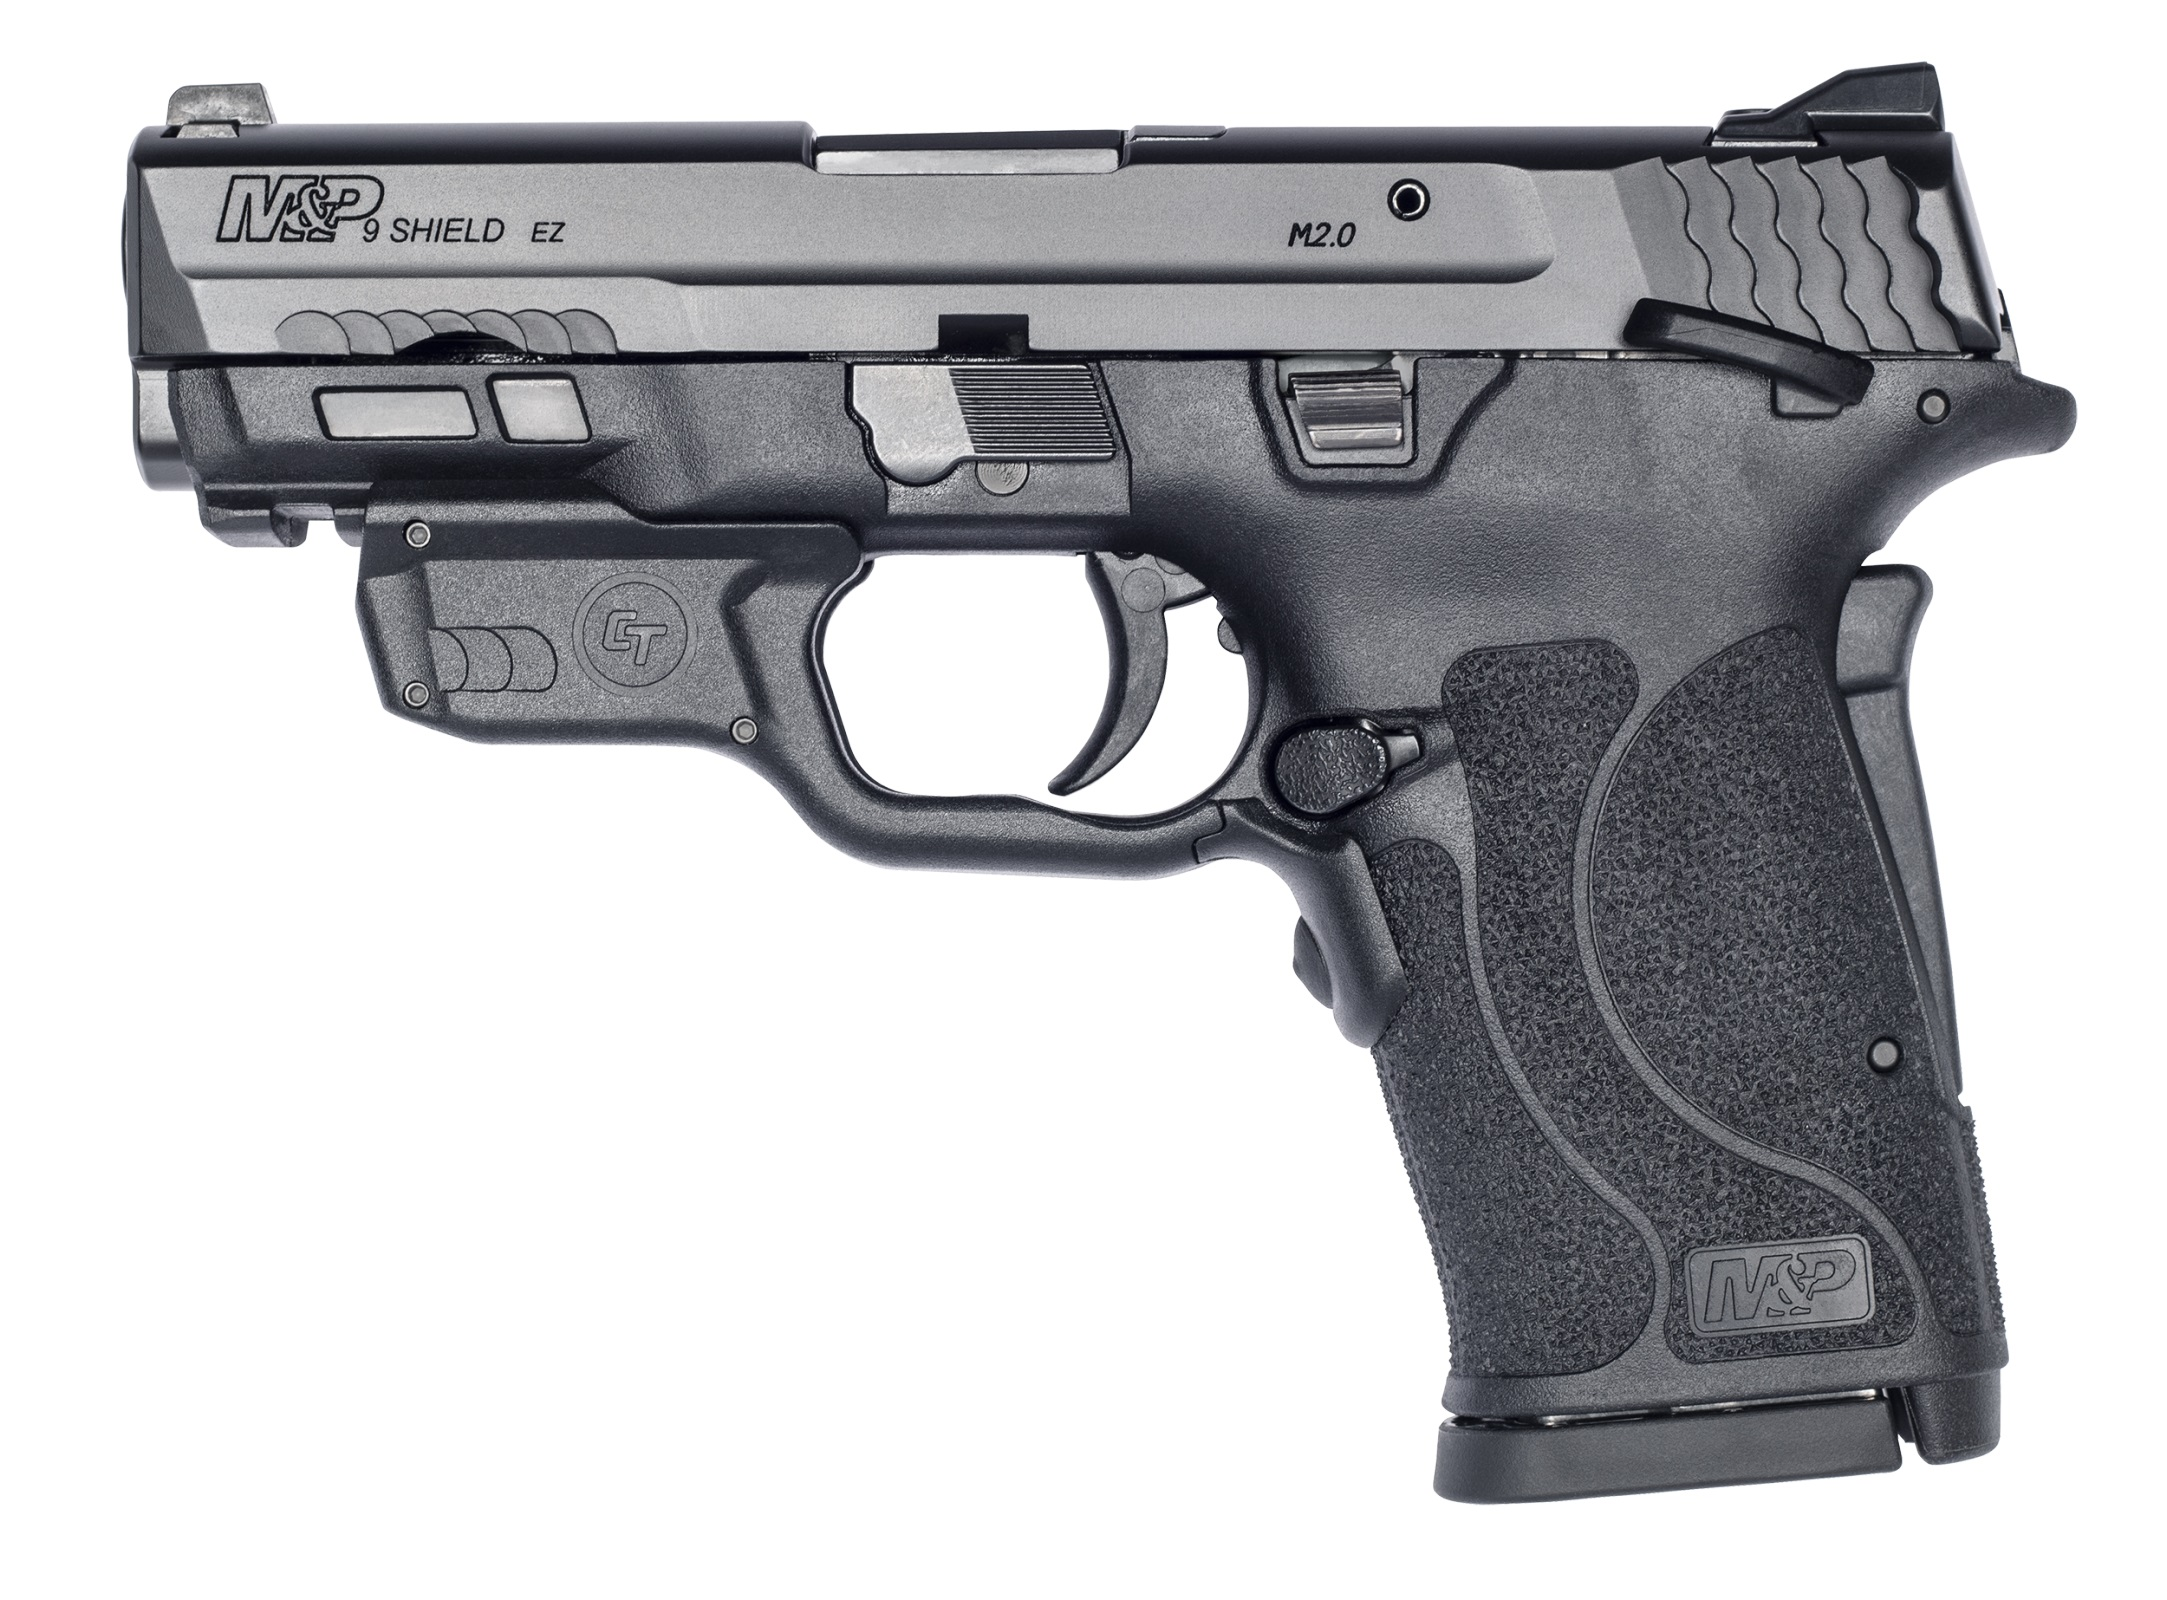 Smith and Wesson M&P9 M2.0 Shield EZ 9mm